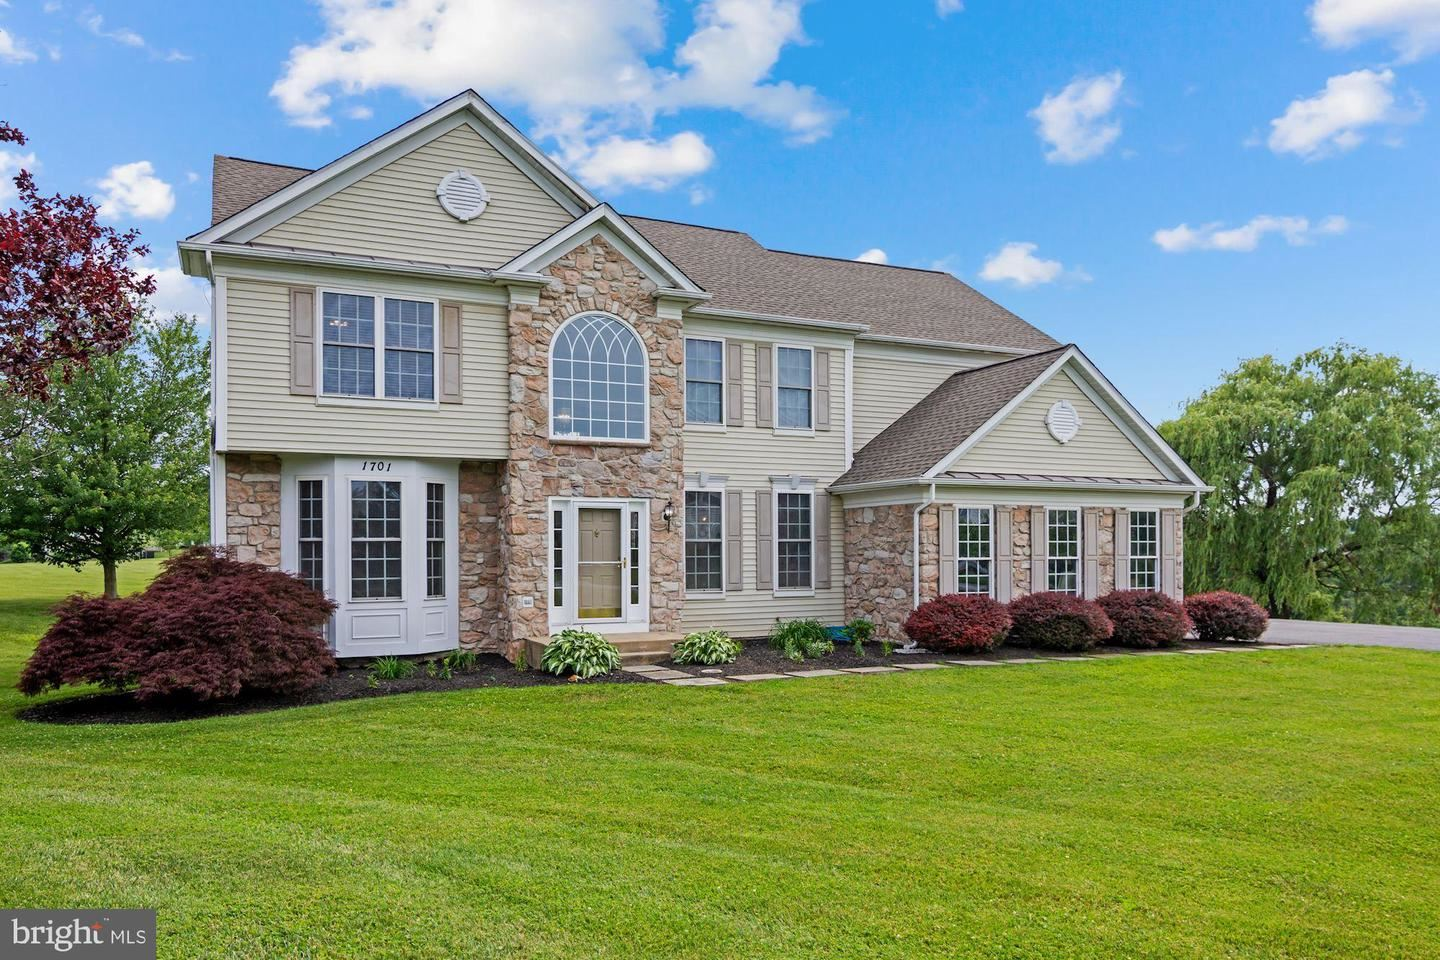 Photo for 1701 NATURES WAY, WOODBINE, MD 21797 (MLS # MDCR205376)